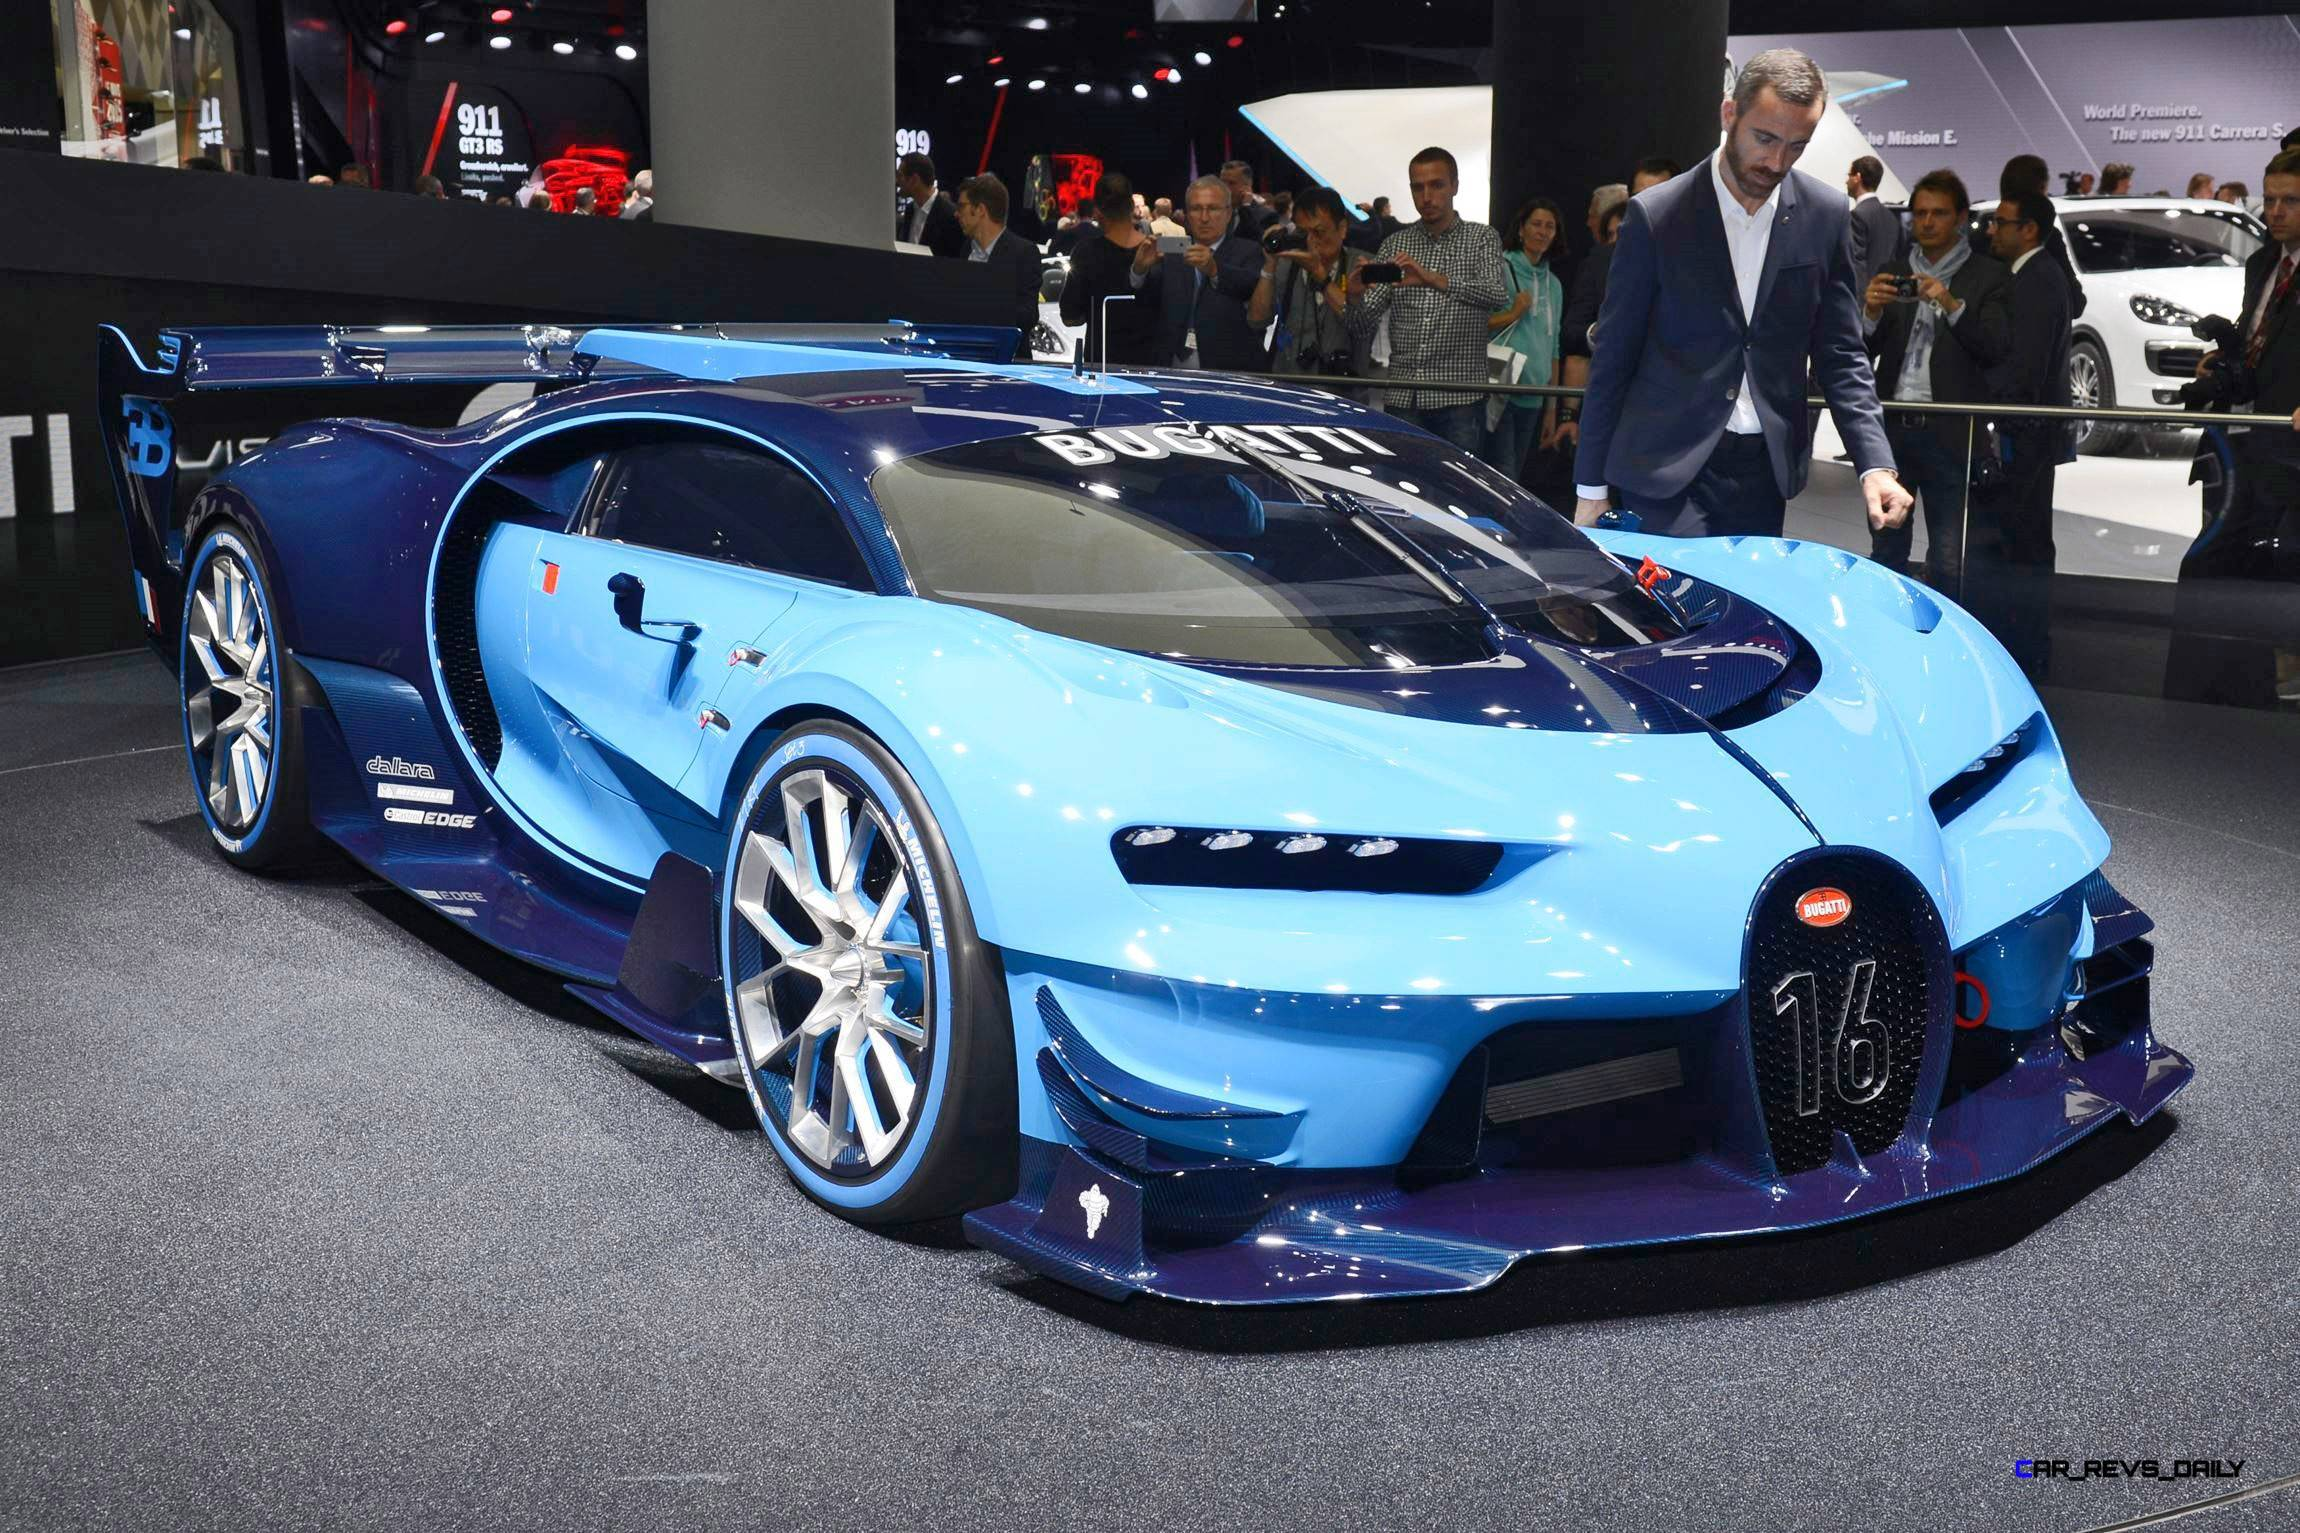 Wiringghia also Electrical Wiring Diagram Software Free together with Bugatti Auto Show 2014 Wiring Diagrams together with Swing Auto Gate Wiring Diagram besides Automotive Wiring Diagram Creator. on premium automotive electrical wiring diagrams